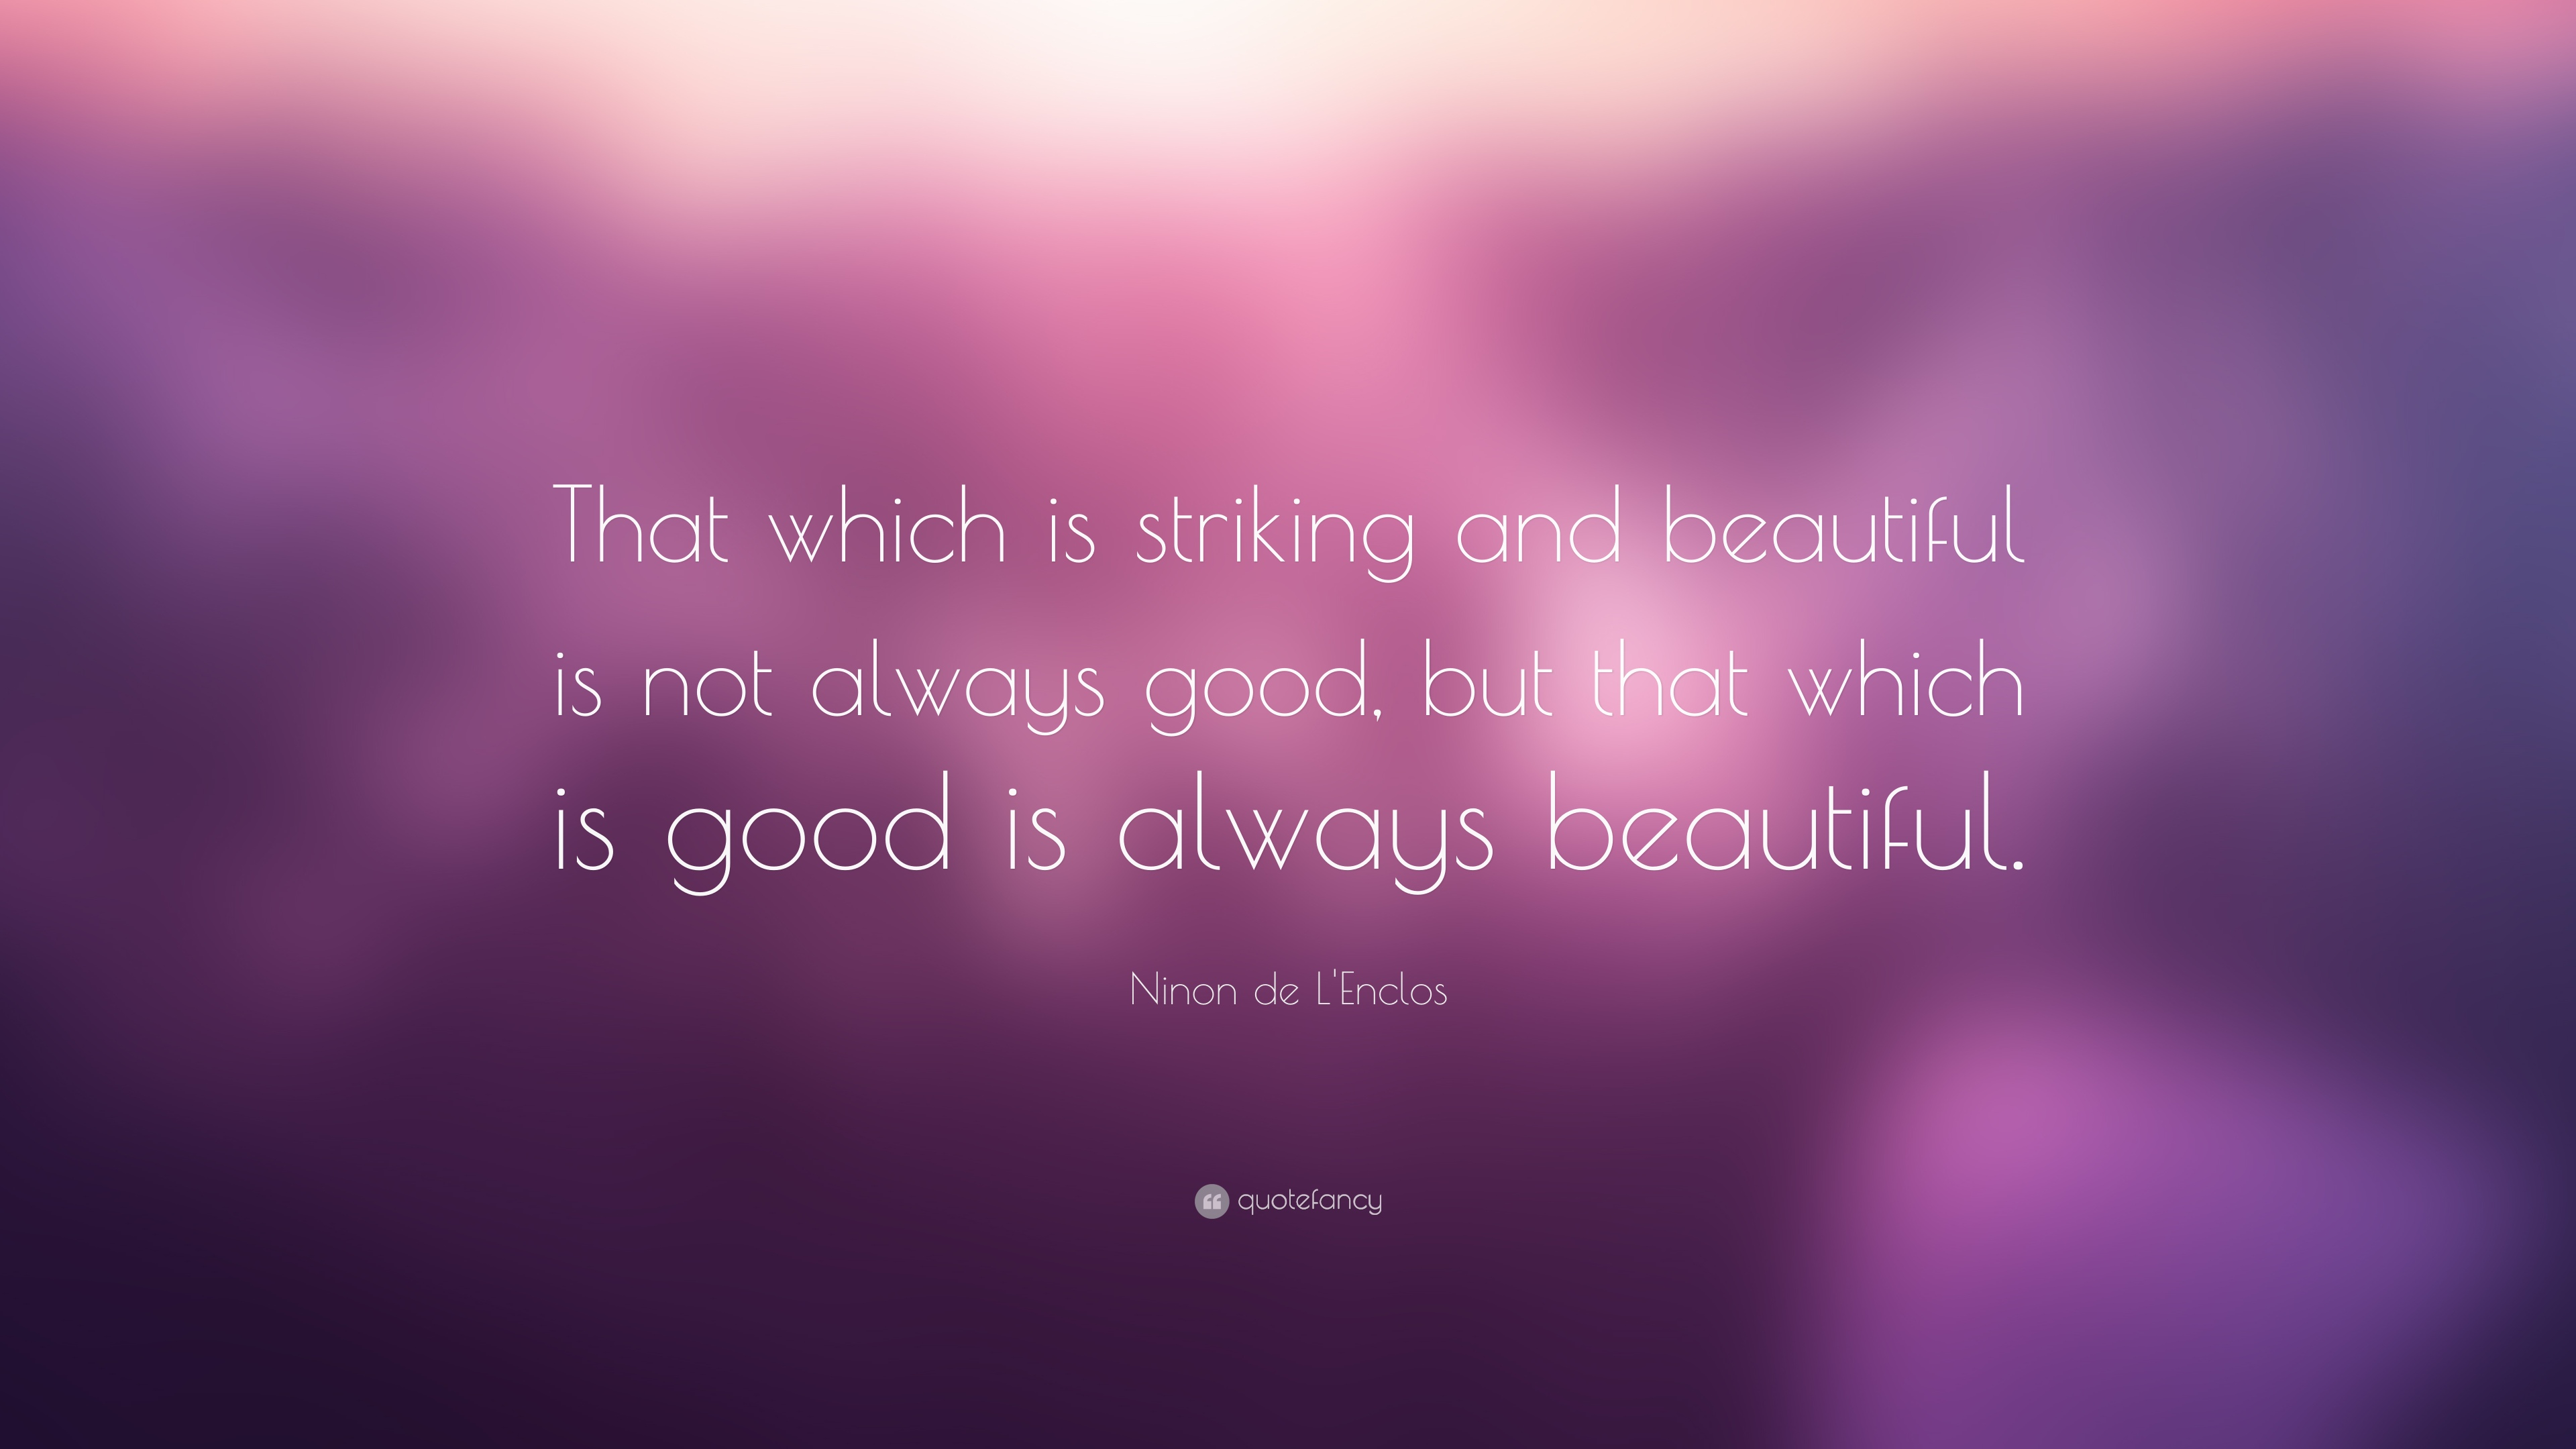 Beauty Quotes That Which Is Striking And Beautiful Not Always Good But